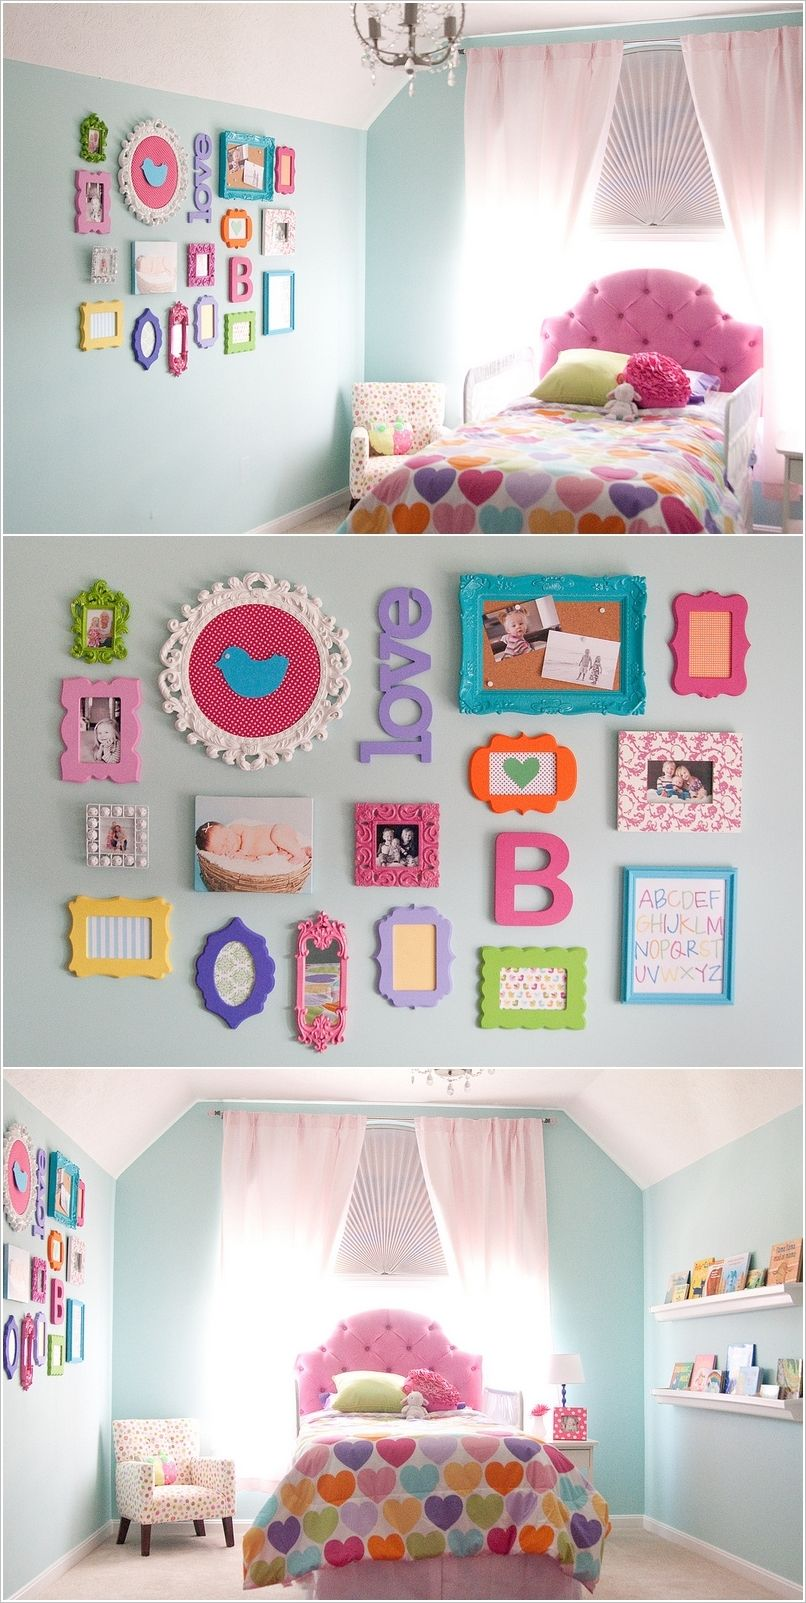 Kids Bedroom Wall Decor multi-colored picture frames & wall decor for gigi's room! perfect